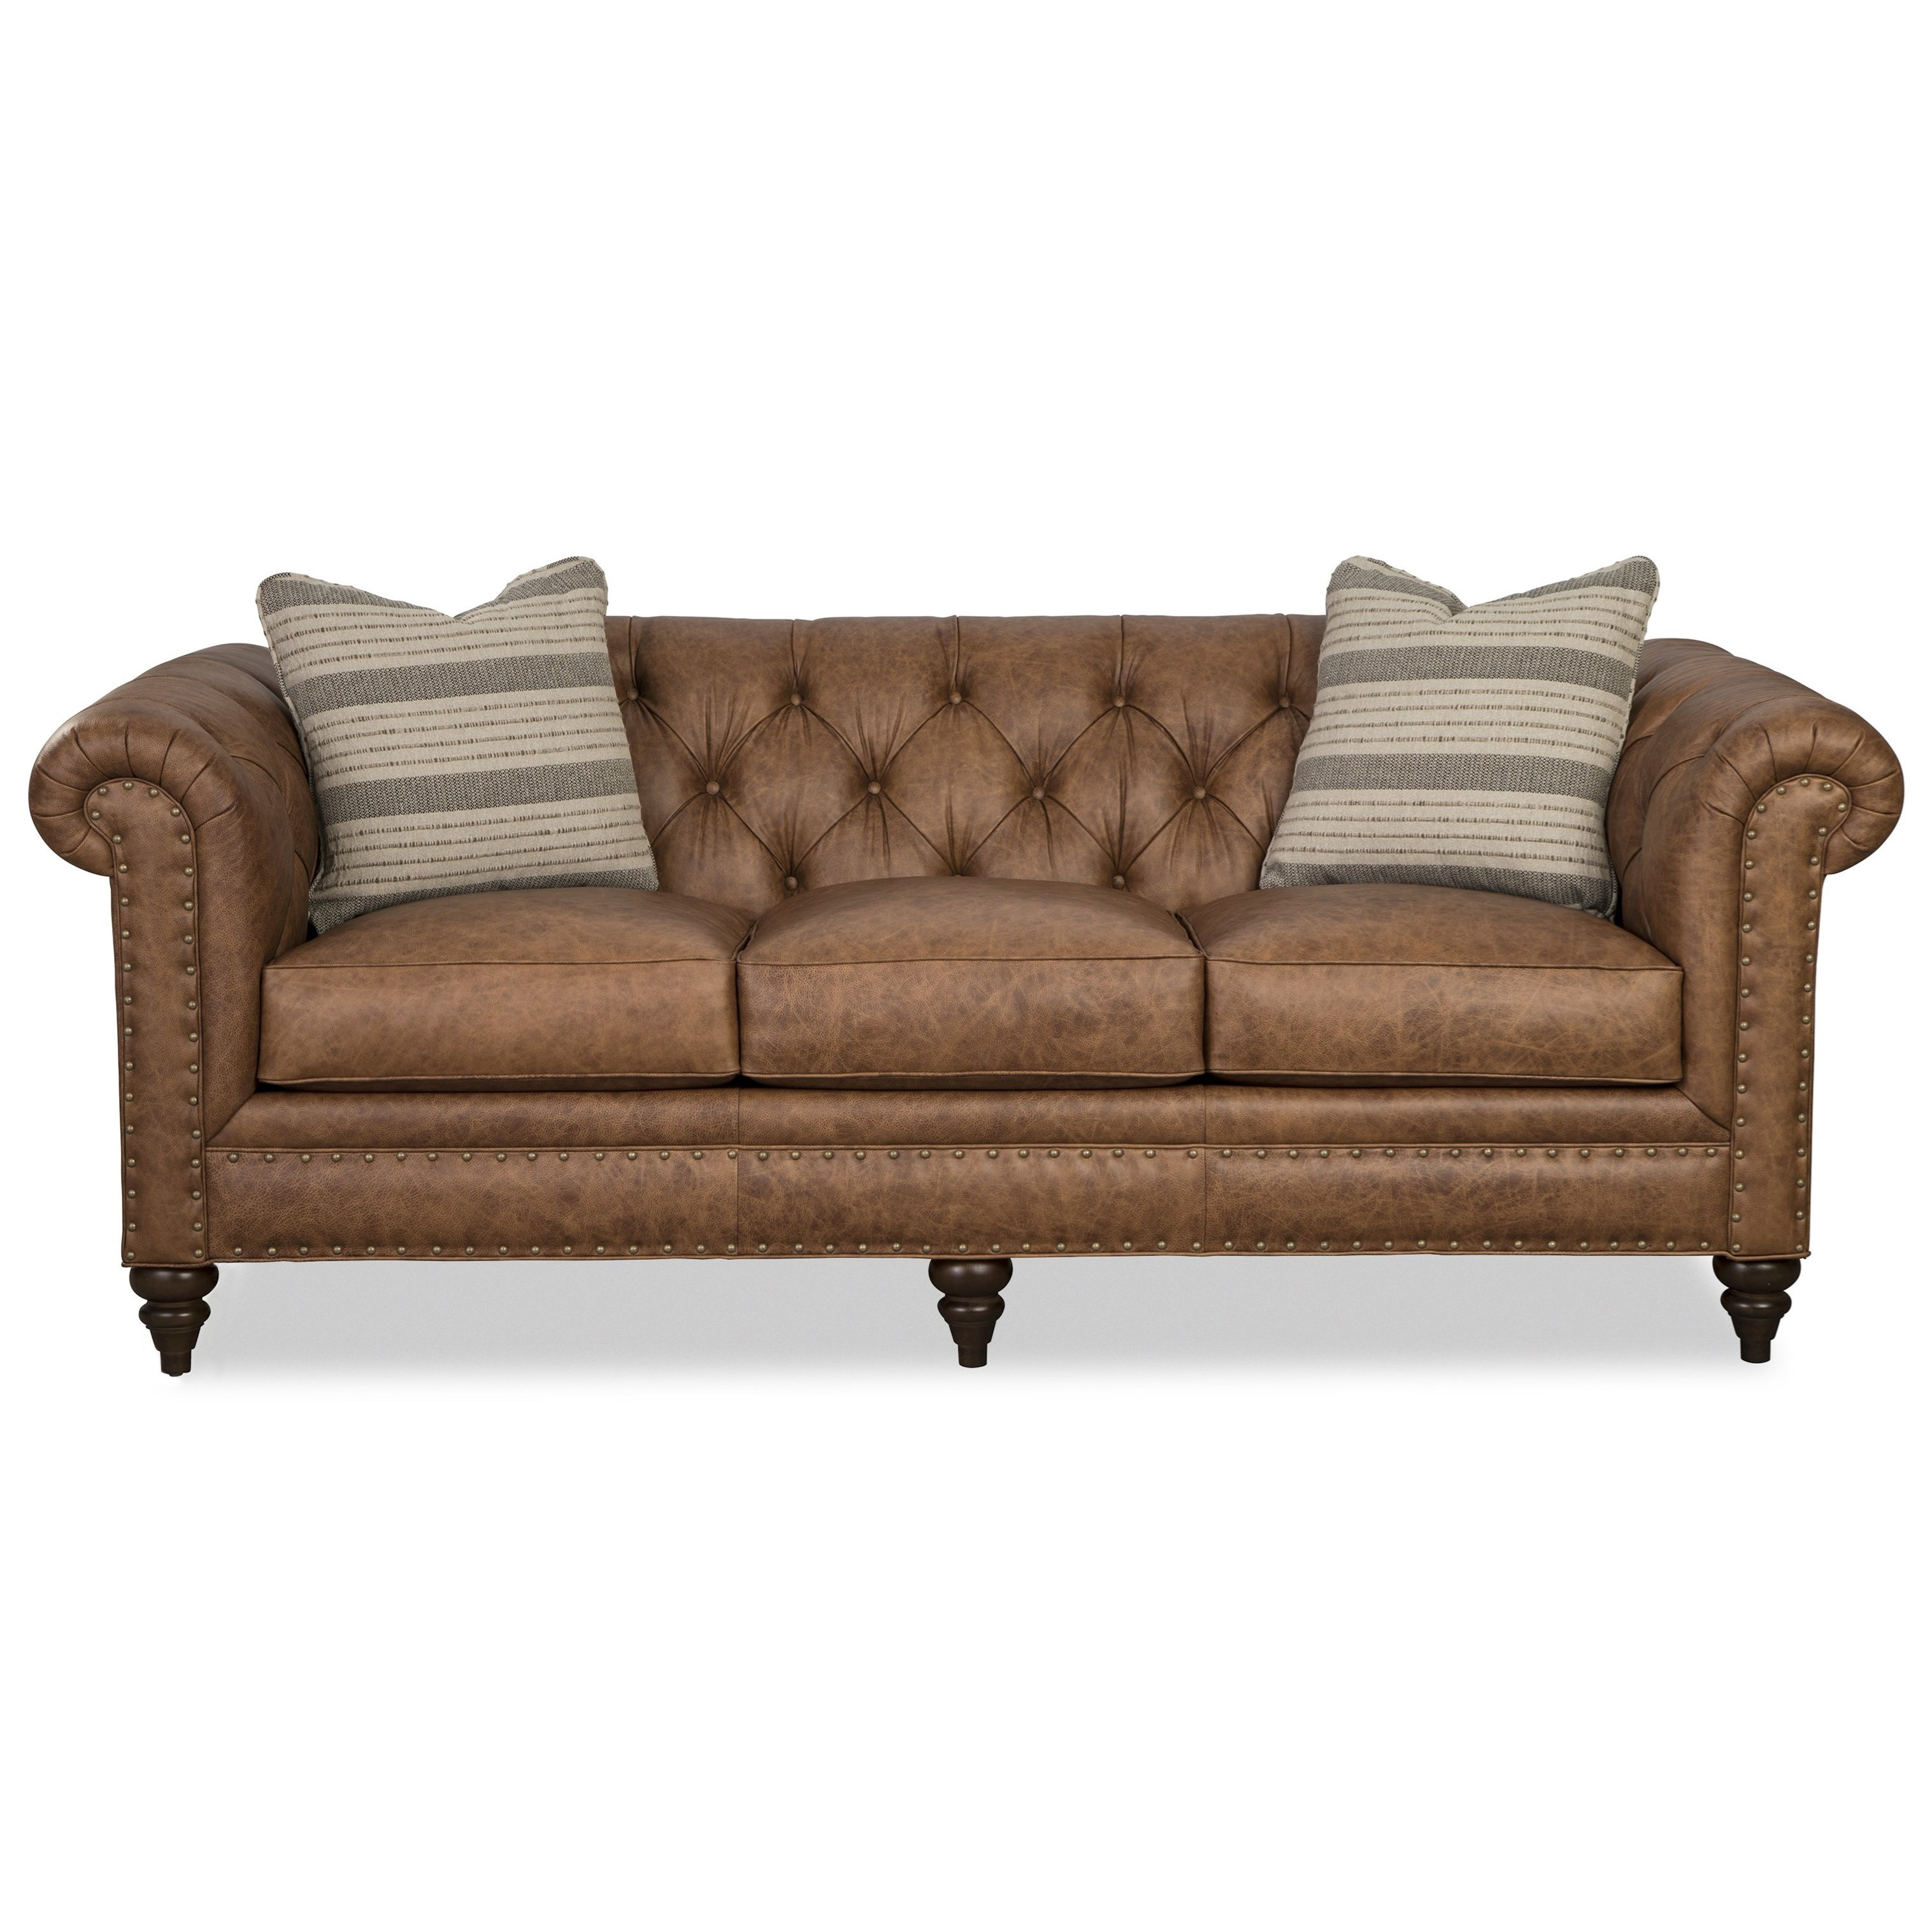 L743150 88 Inch Sofa w/ Pillows by Craftmaster at Baer's Furniture